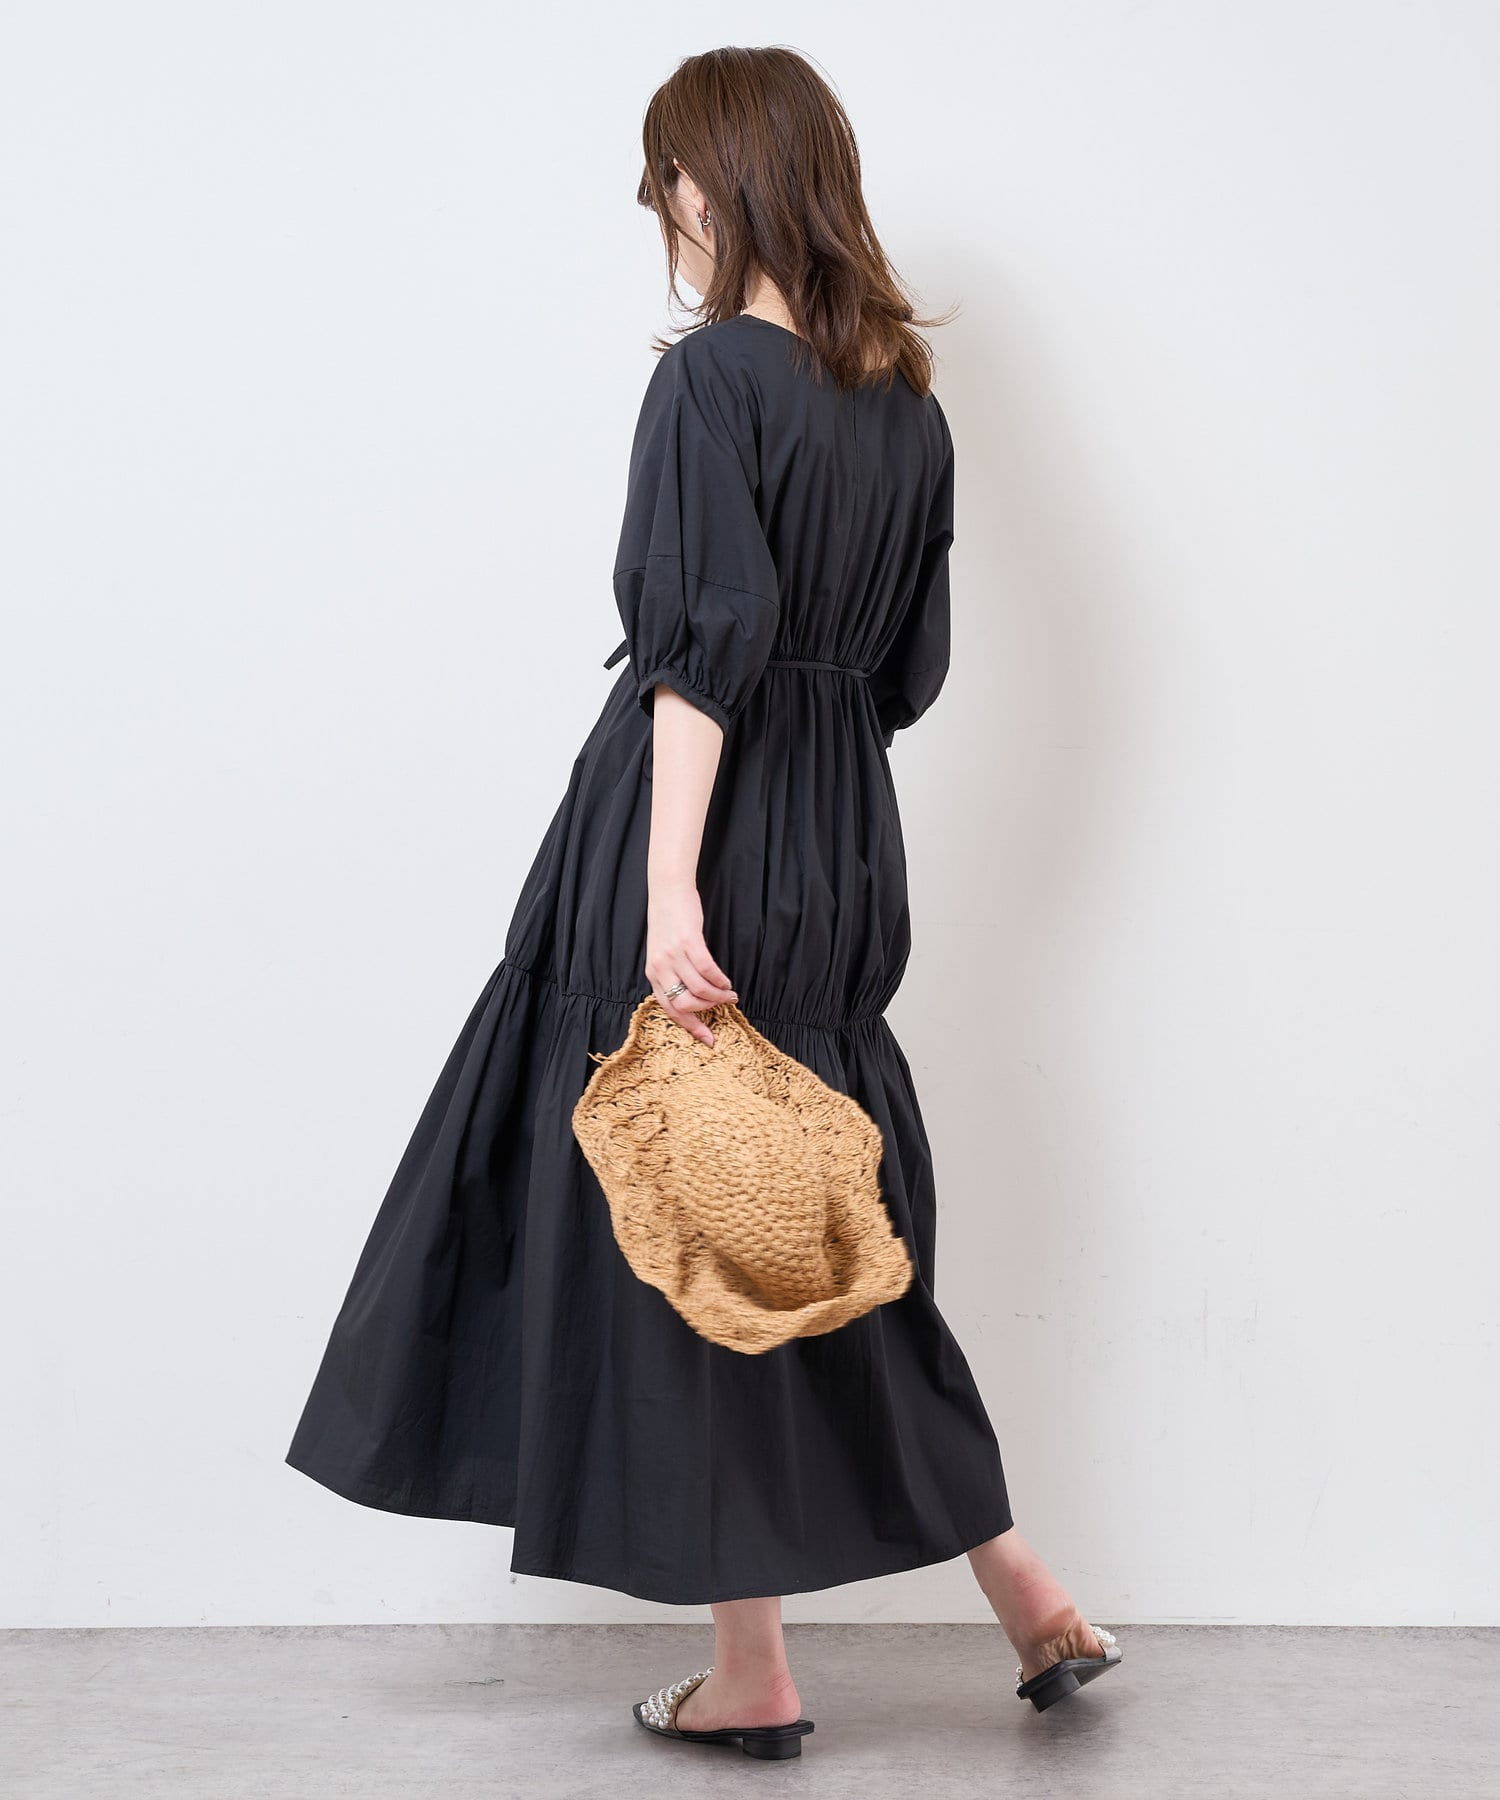 natural couture(ナチュラルクチュール) 【WEB限定】おしゃれティアードワンピース